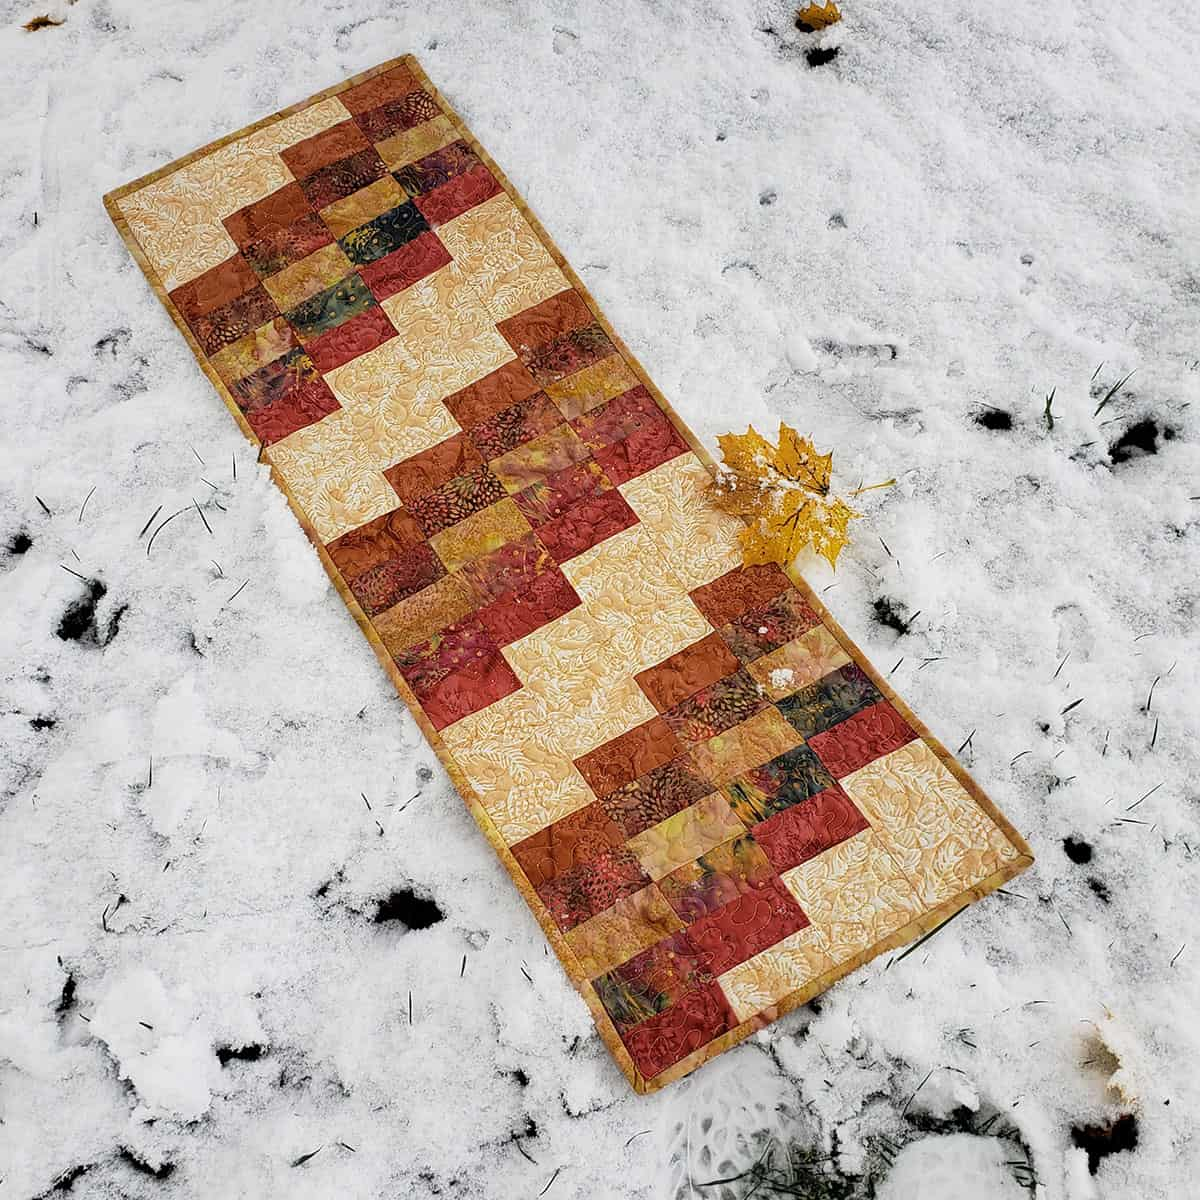 Autumn table runner in the snow